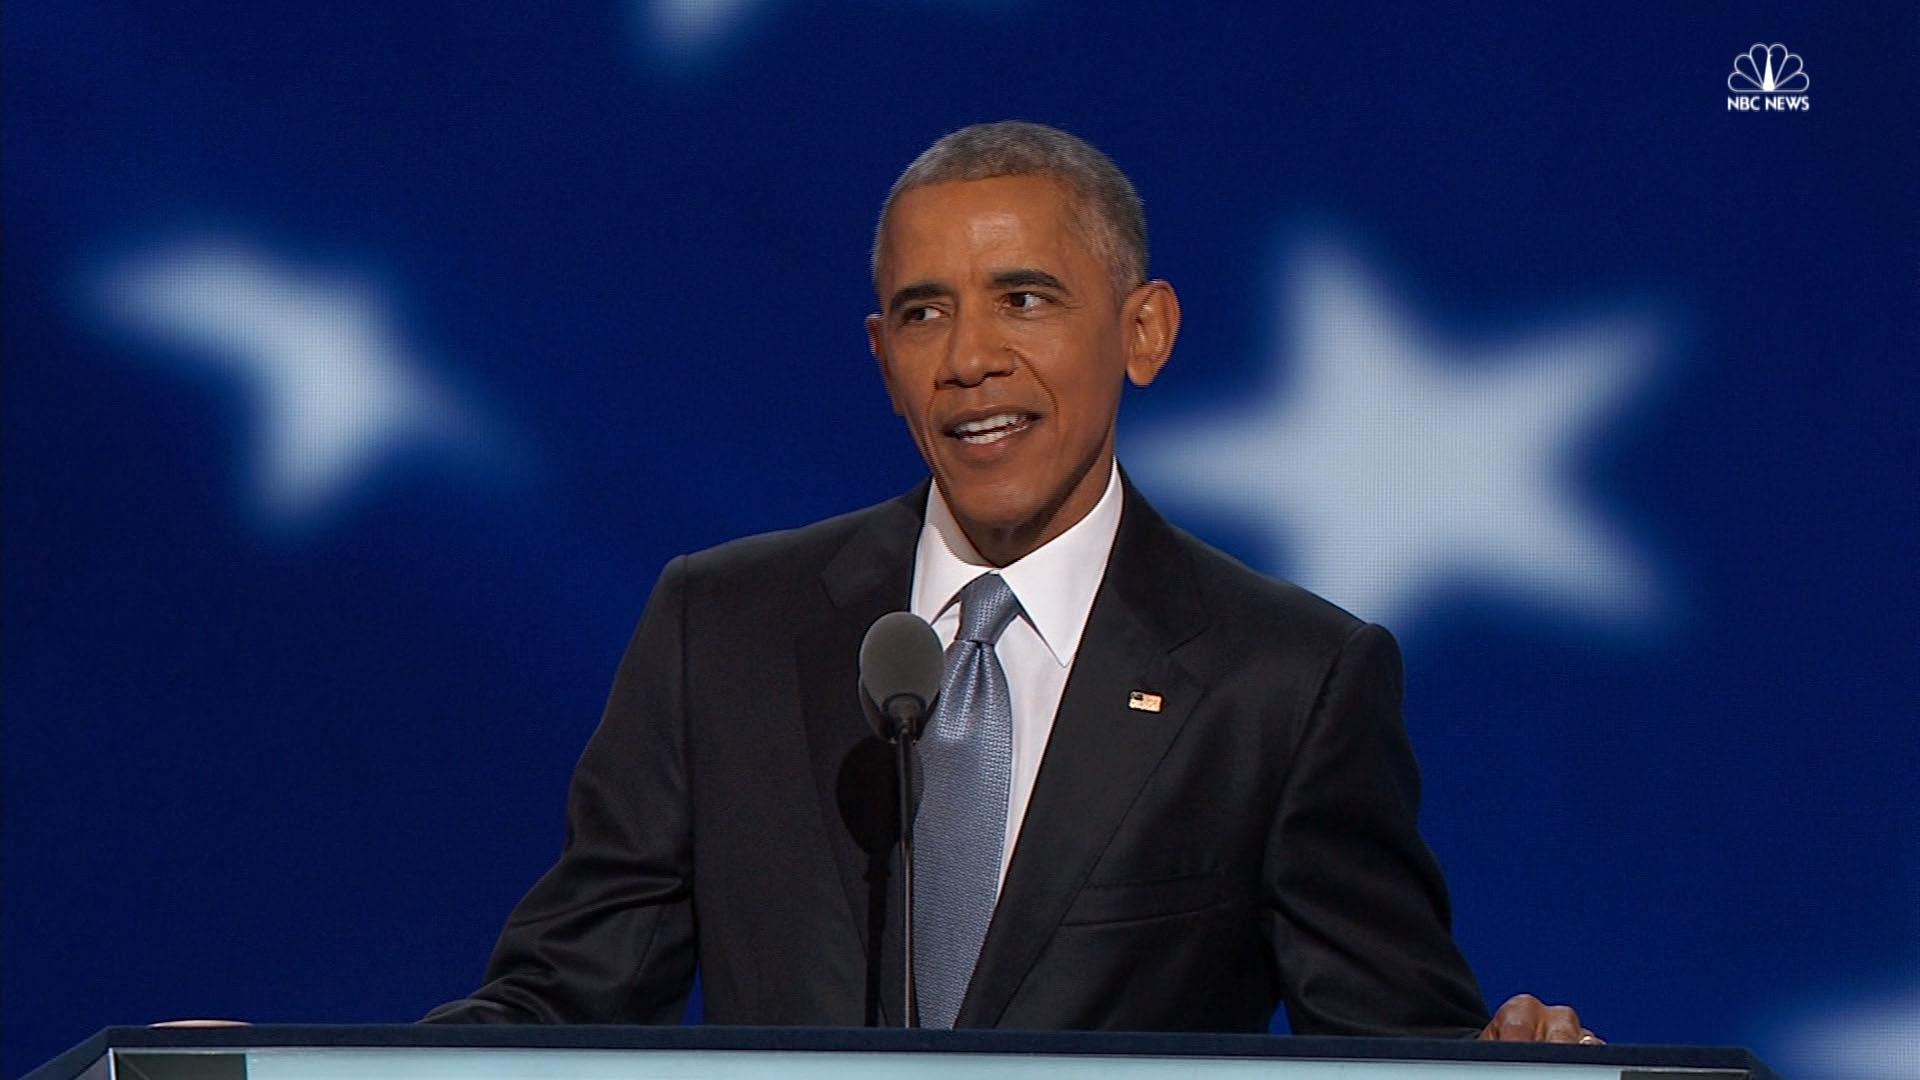 Obama's DNC speeches over the years